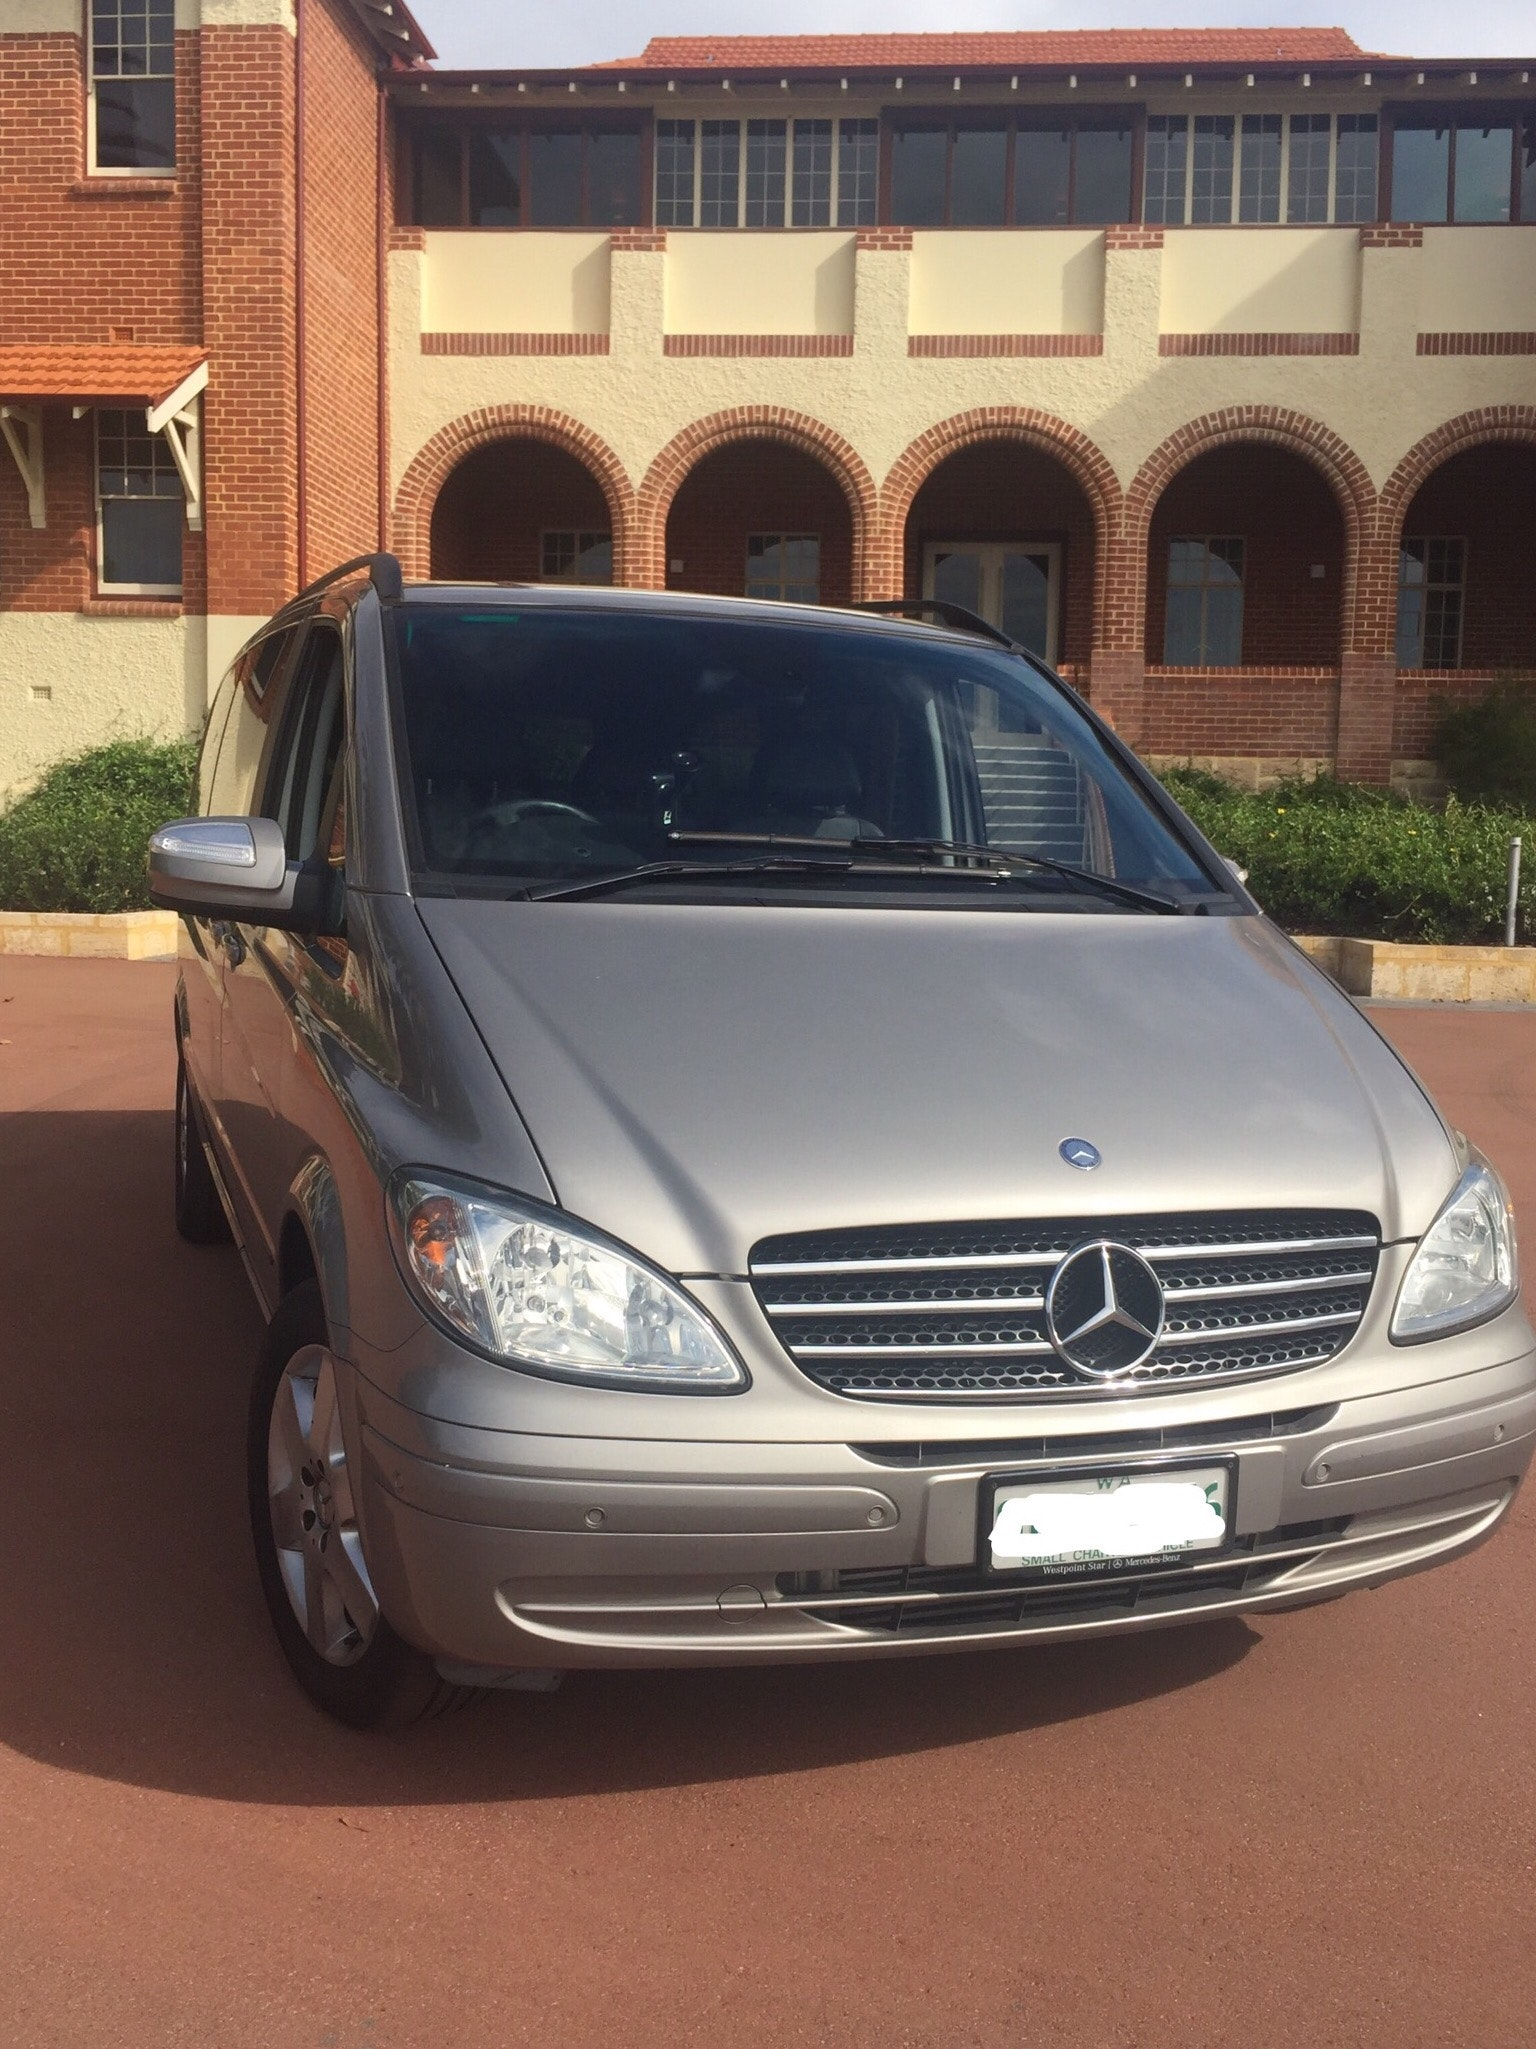 Perth Chauffeur 24/7 vehicle 1